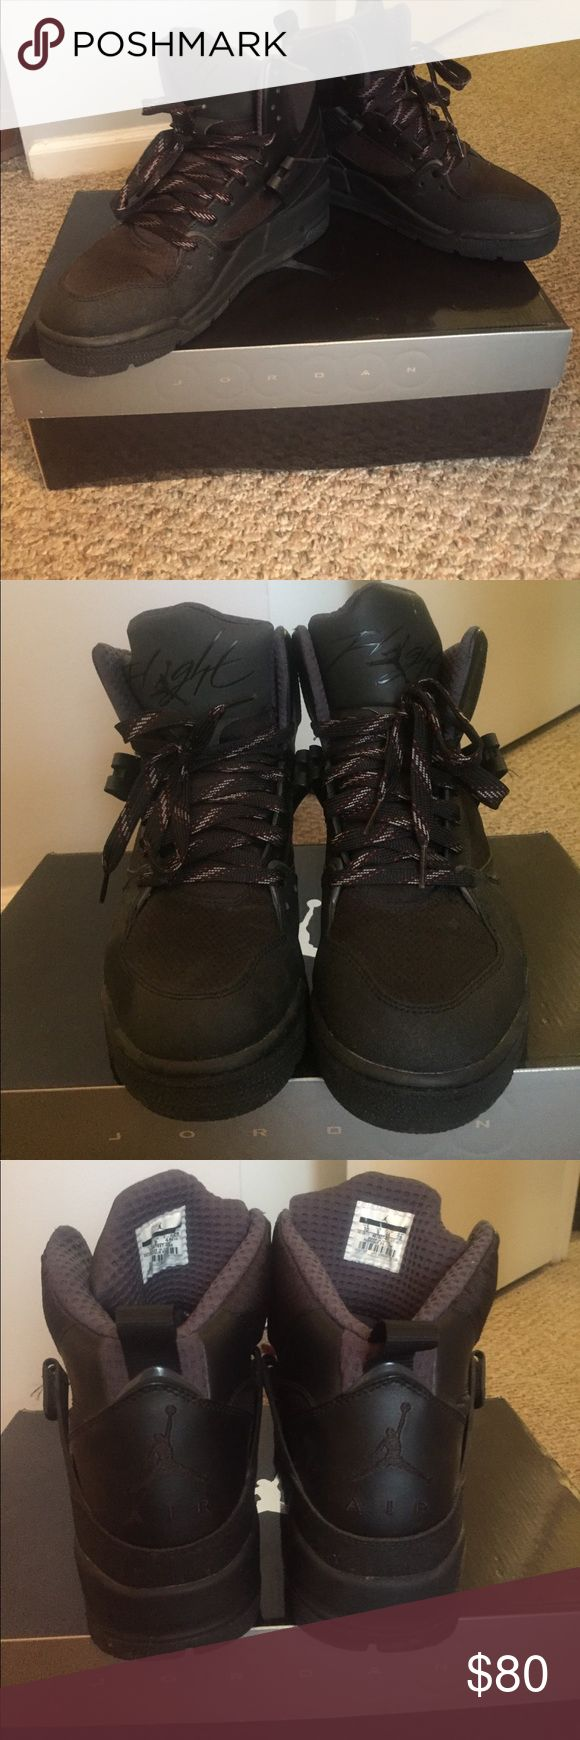 Barely used Jordan Flight 45 TRK boots! Brand new, barely used Jordan boots! My boyfriend wore these boots twice and they have been sitting in the box. They are in great condition! Size 10 with box! Jordan Shoes Boots